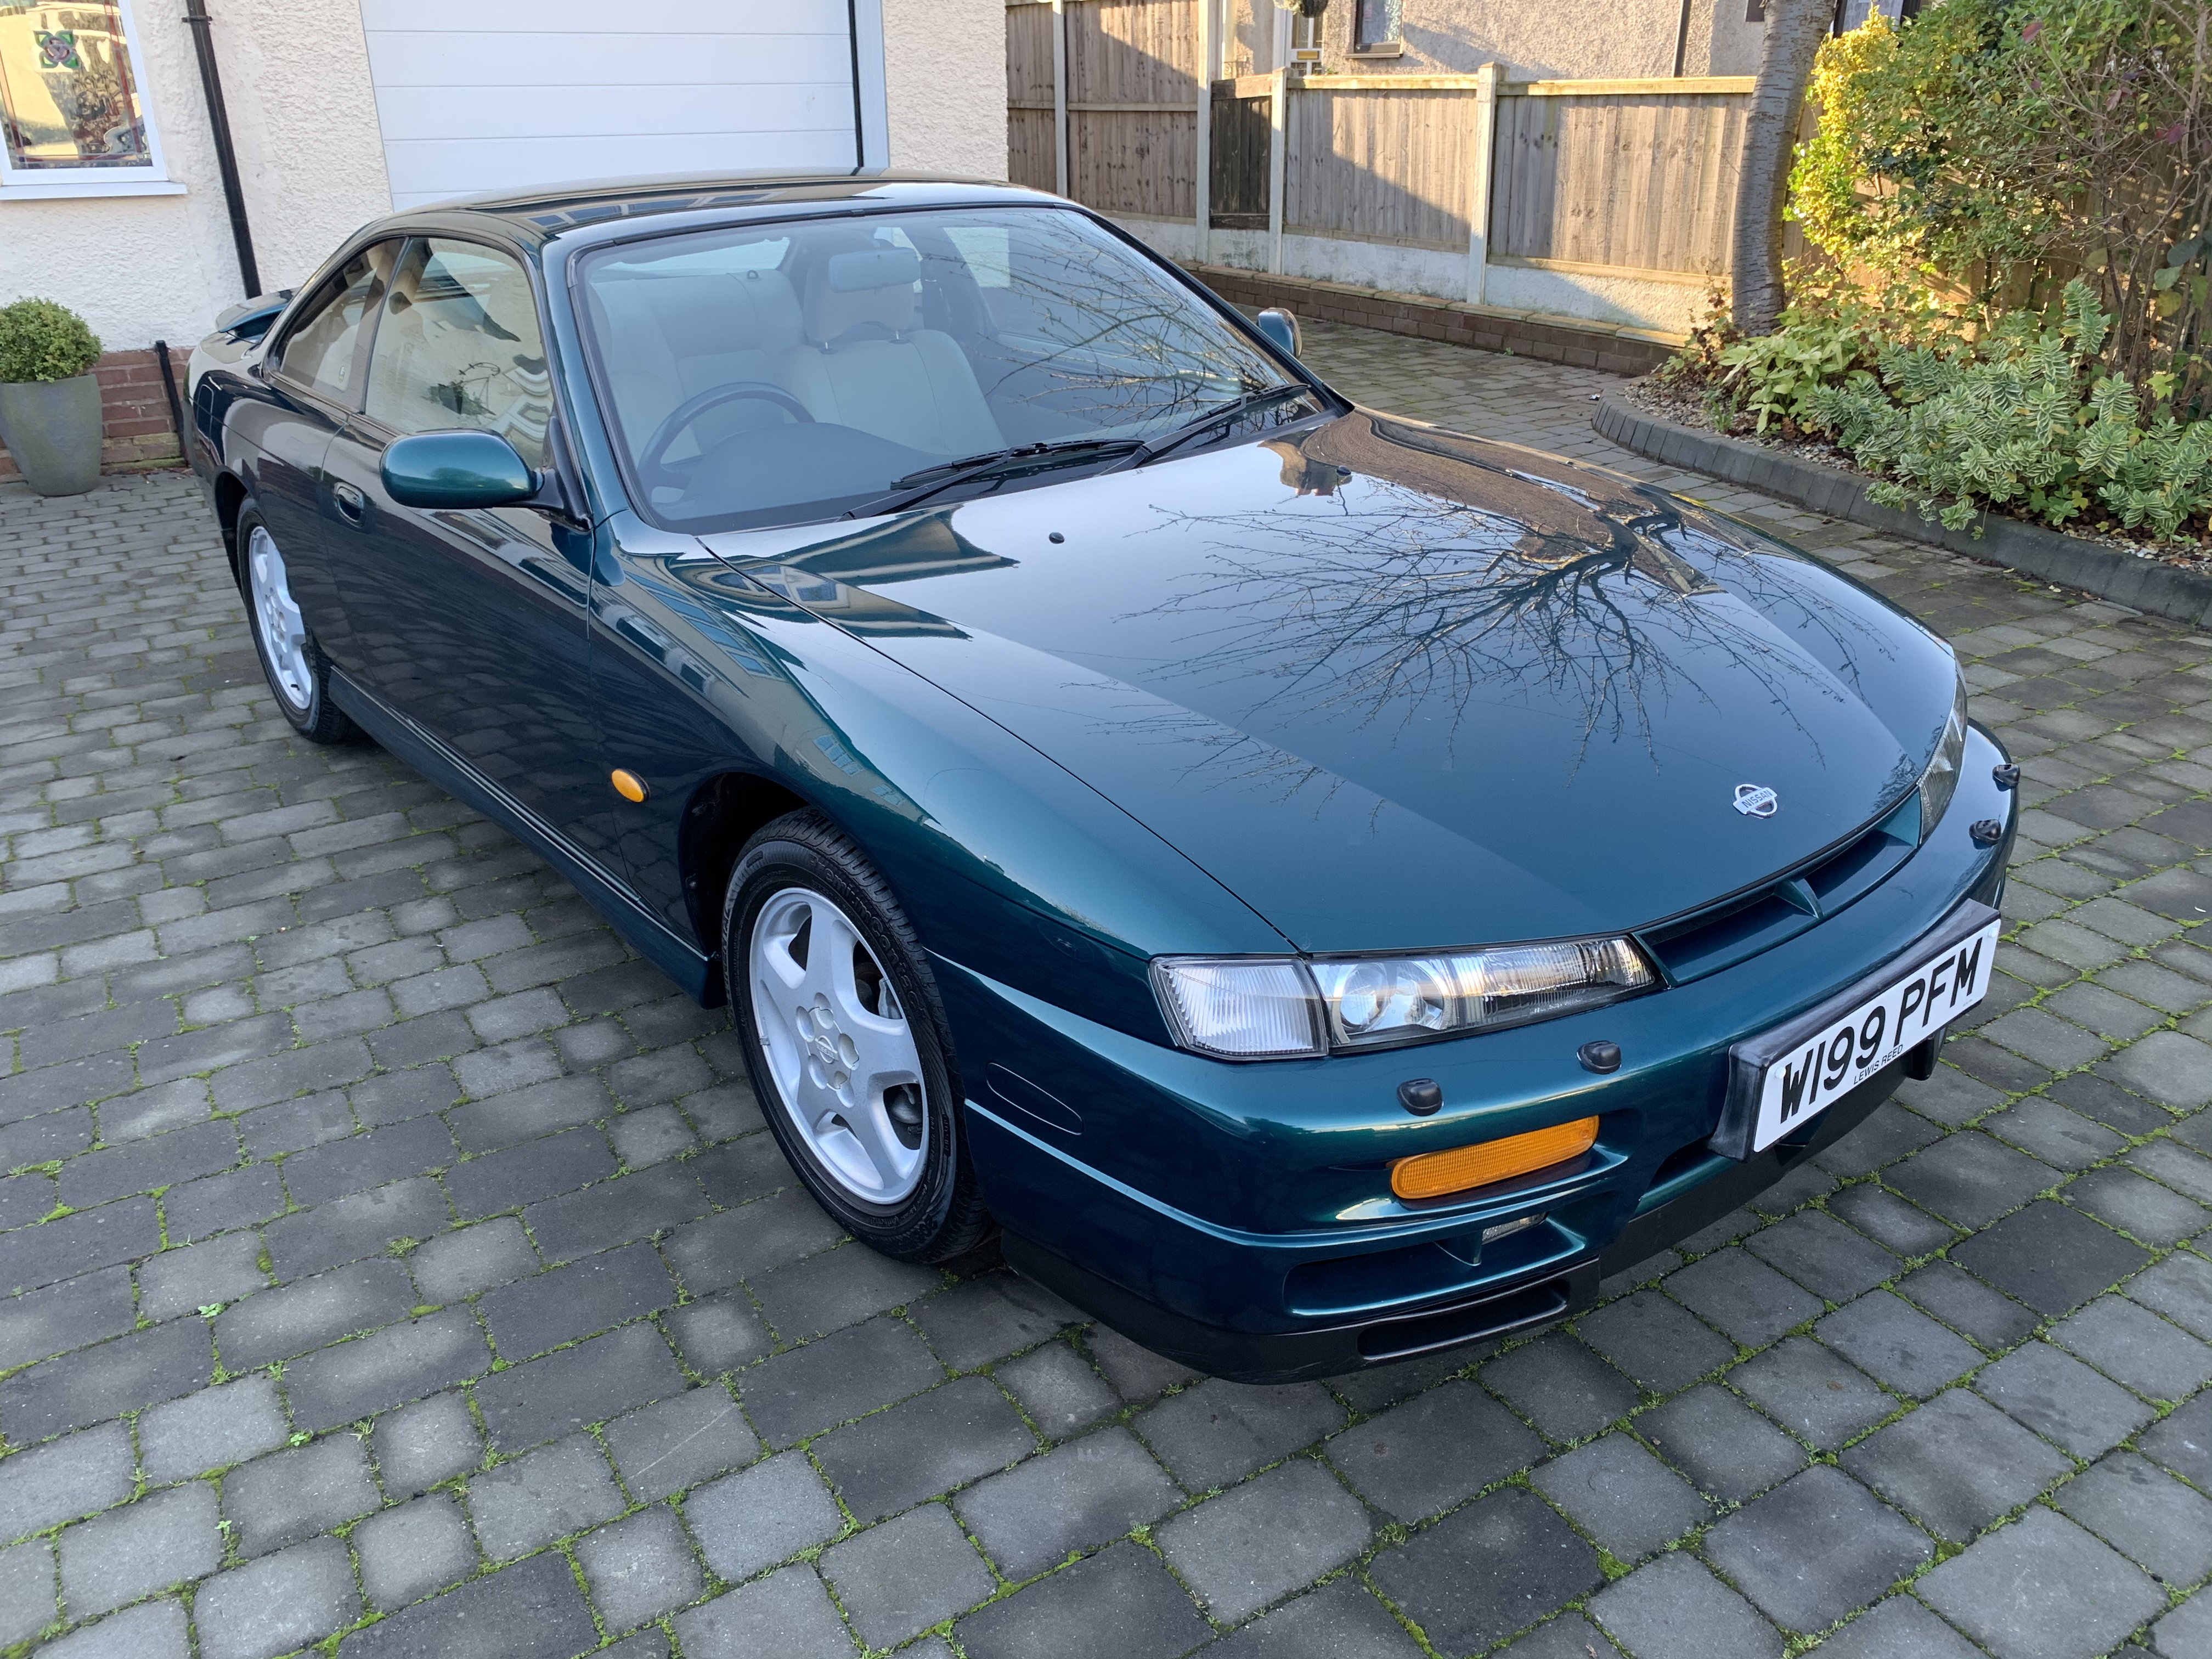 2000 Nissan 200sx 1 owner For Sale (picture 1 of 6)